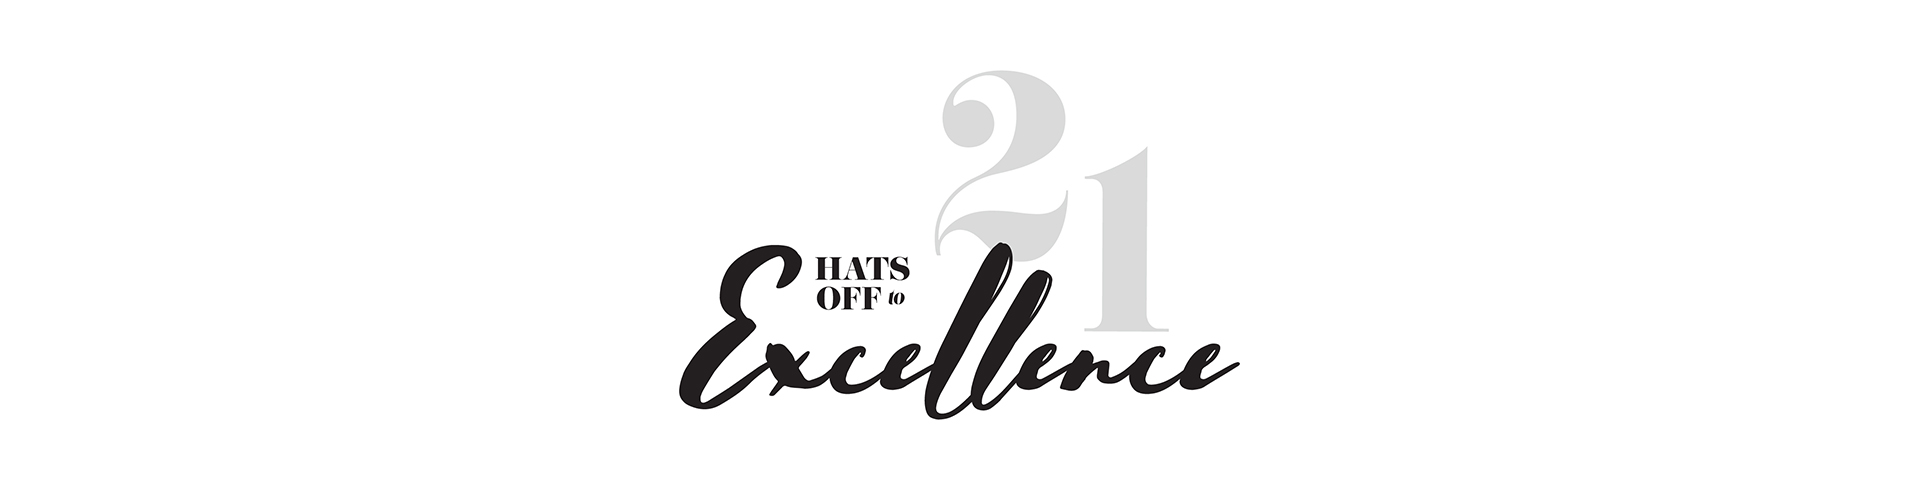 Hats Off to Excellence banner